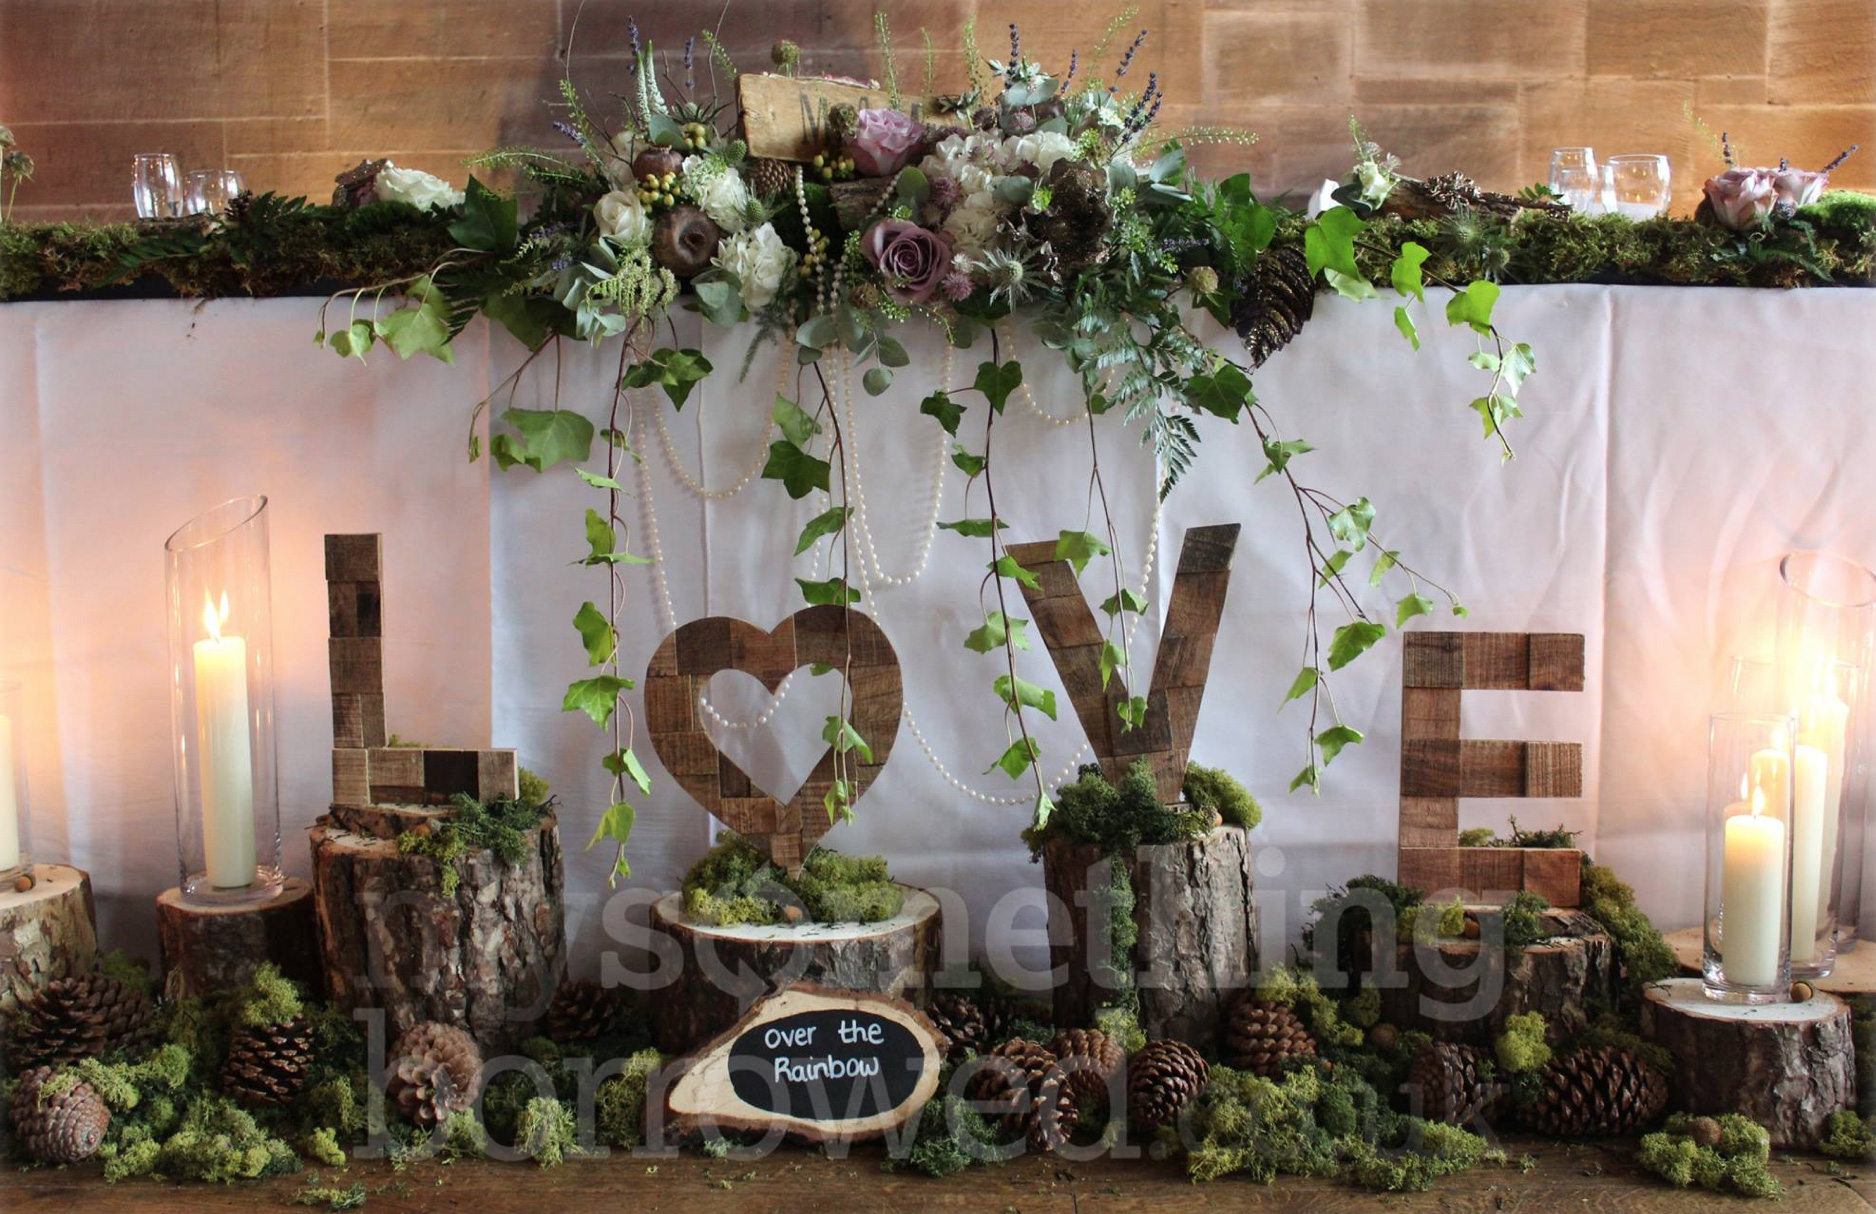 Venue Dressing Yorkshire Wedding Hire Wedding Decorations Hire